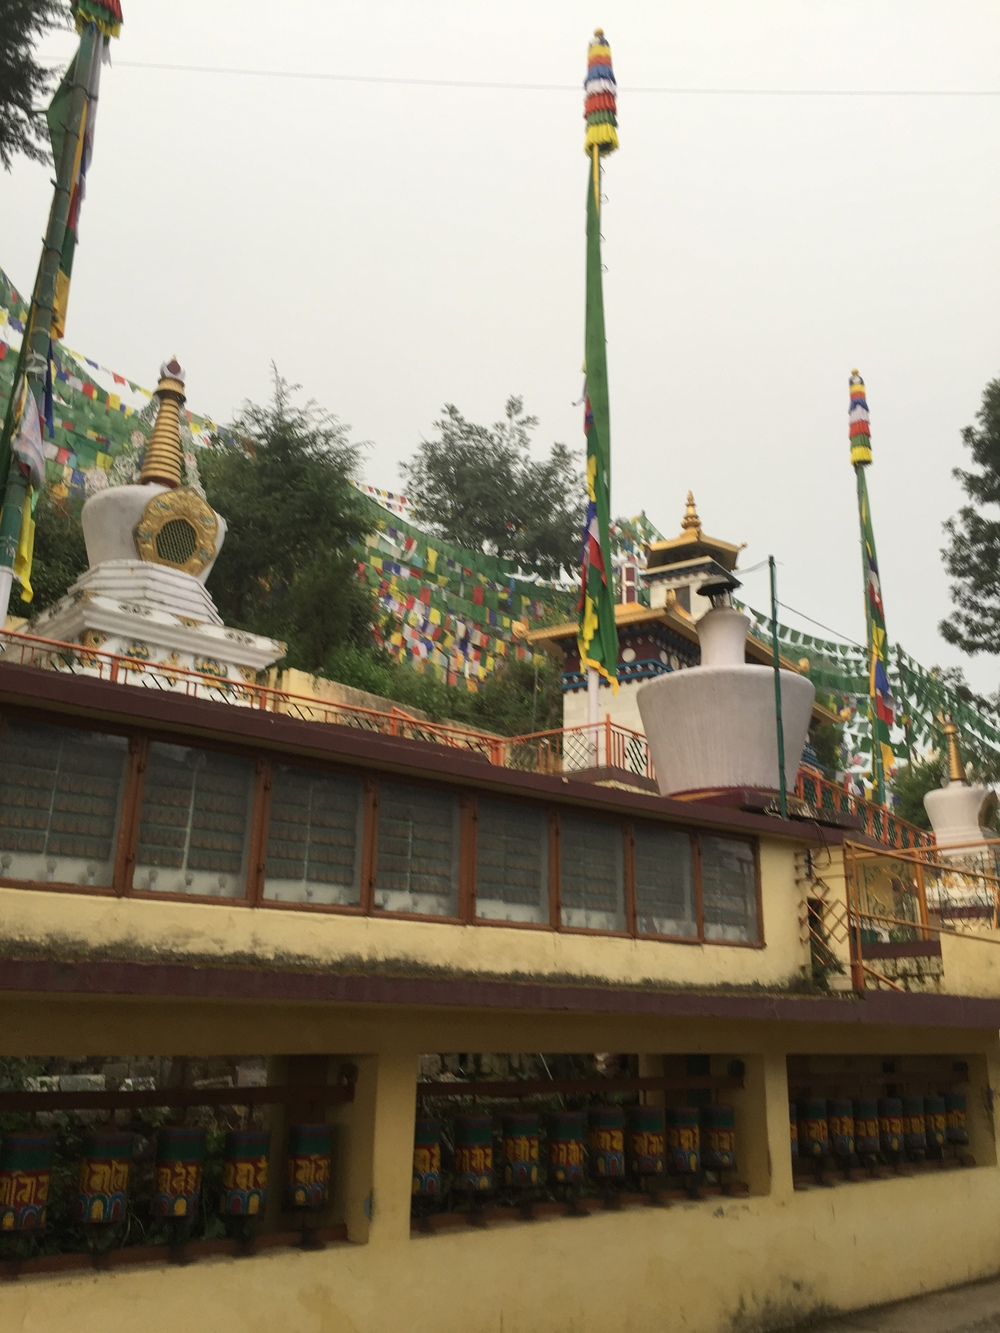 These are stupas in the Dalai Lama's garden. Those wheels in the walls are prayer wheels. Prayer wheels are made by writing thousands of prayers on slips of paper and then putting them into the wheel, and when you spin it, you accumulate the karma of having actually said the prayer one time for each slip of paper. For example, on this wall, there are something like 560 thousand slips of paper, so one quick pass can earn you a lot of karma. Similarly, the prayer flags accumulate karma for the person who hangs them. Each time a prayer flag flaps in the wind, the hanger accumulates the karma of having said the prayer written on the flag one time.